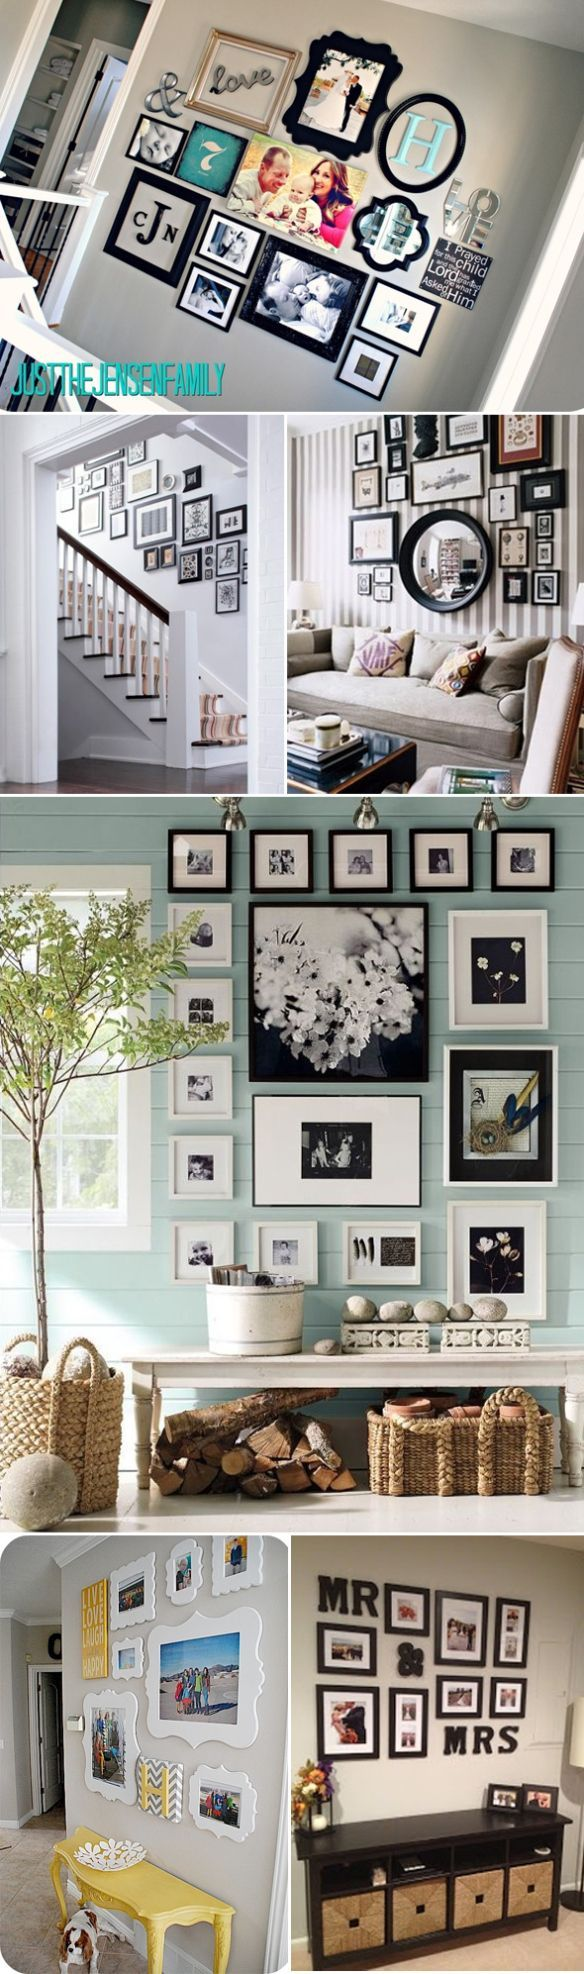 Unique ways of displaying photographs in your home picture walls